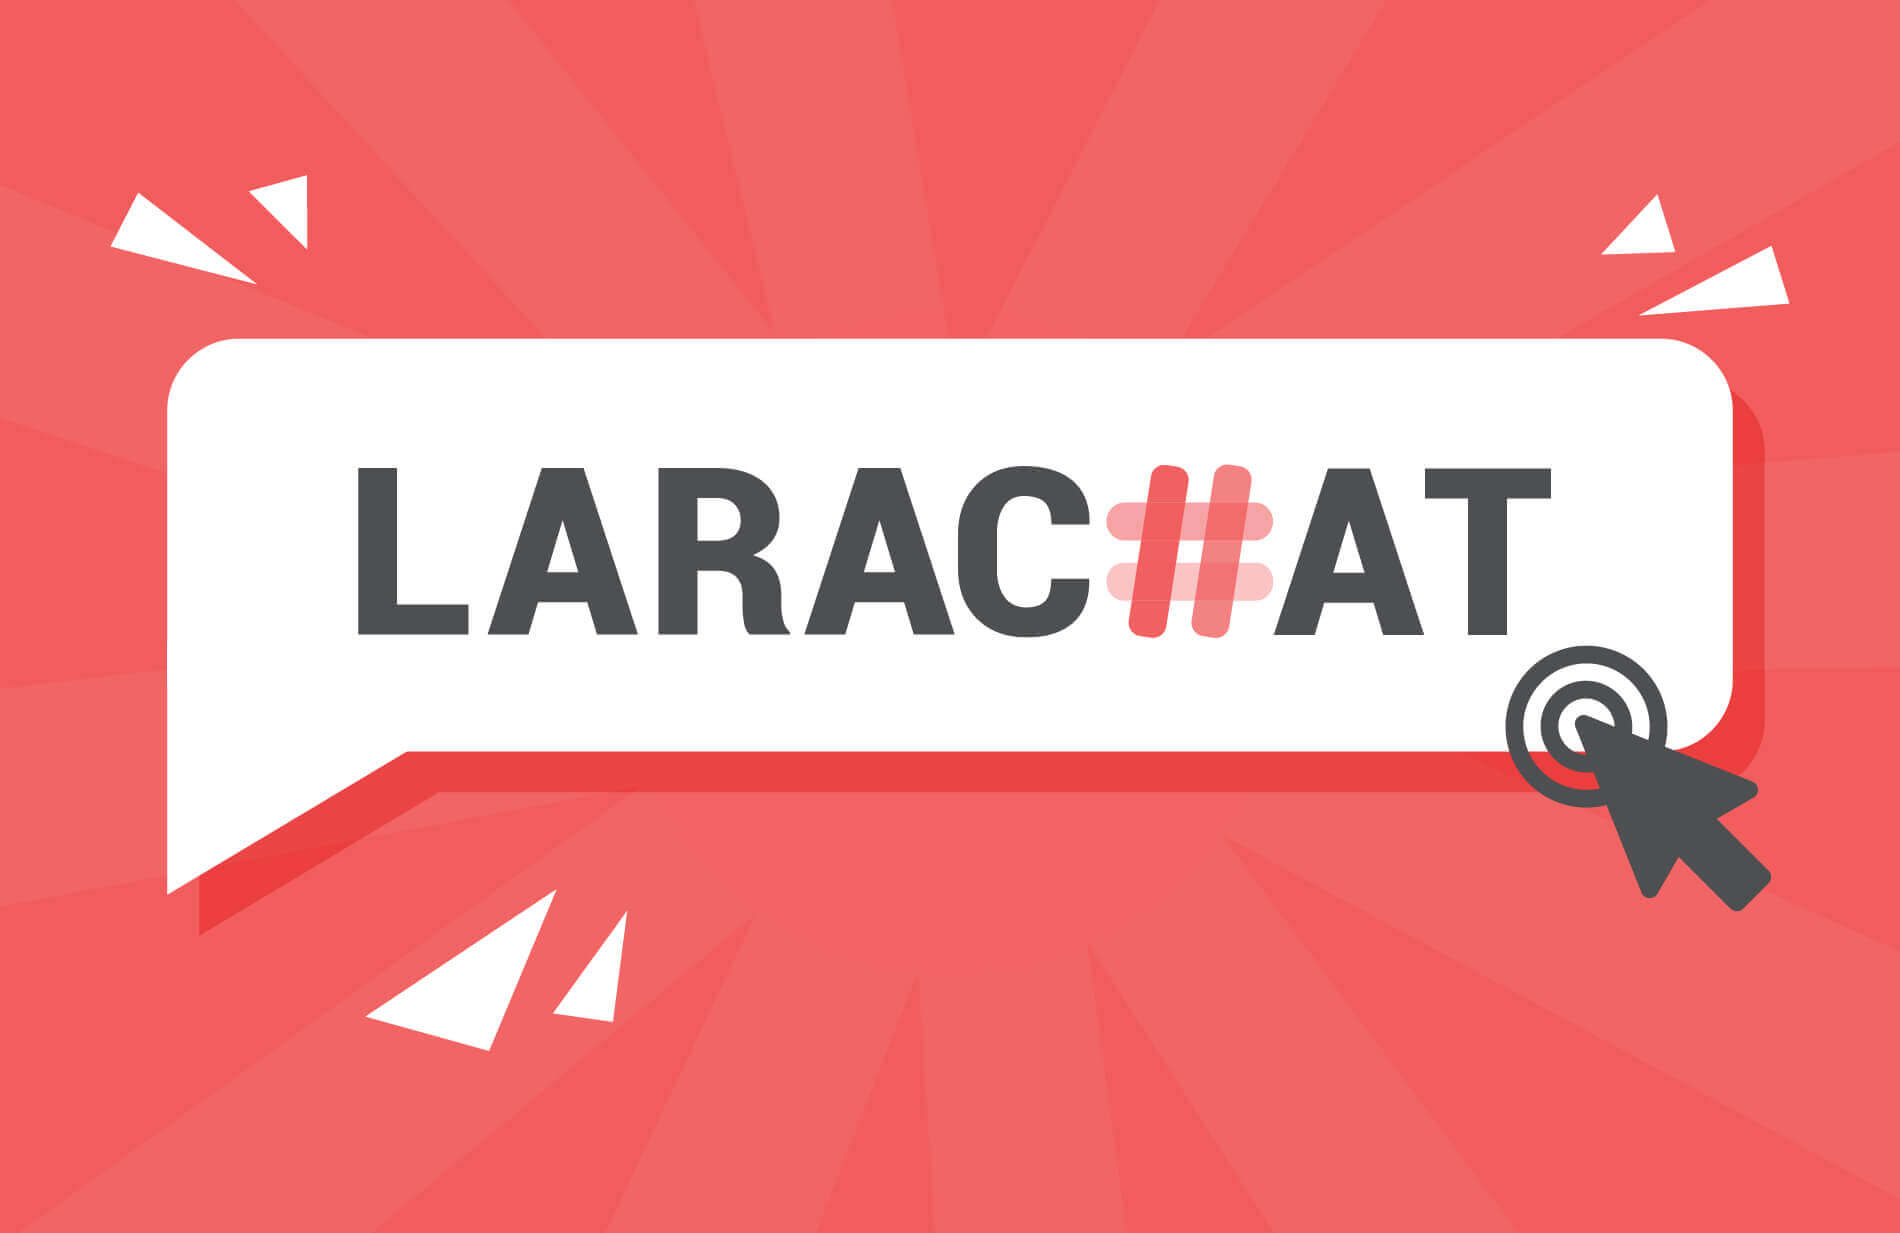 LaraChat - Get involved with the Largest Laravel/PHP Slack